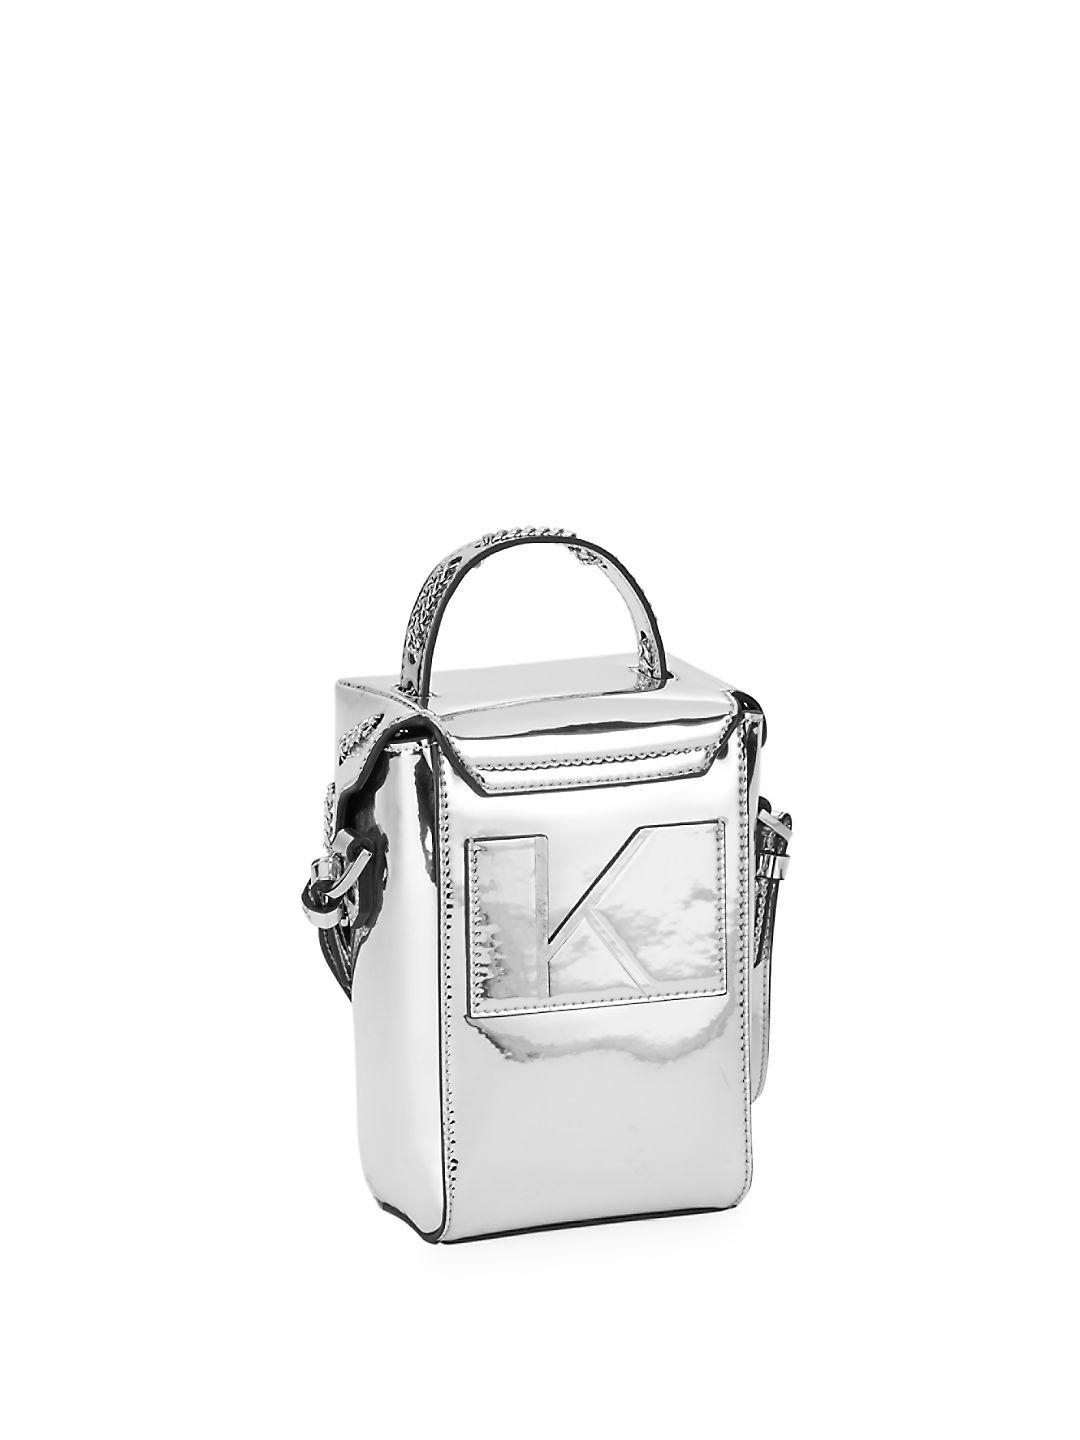 Kendall + Kylie Rubber Ally Metallic Crossbody Bag